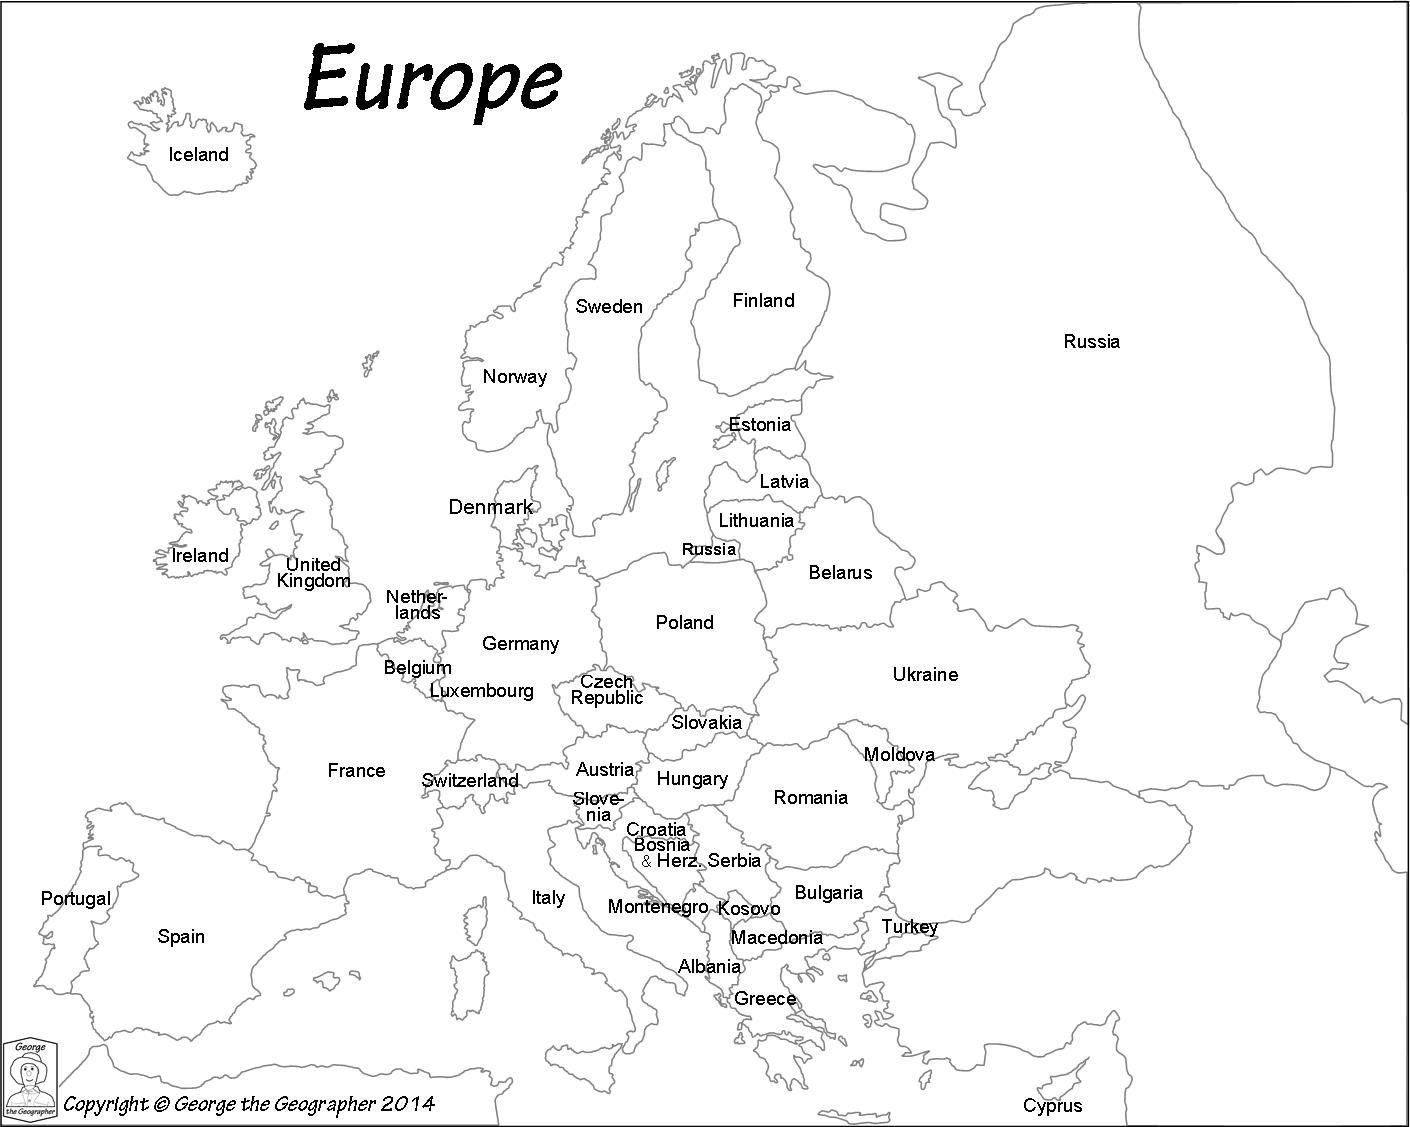 europe black and white map Pin on Us state map